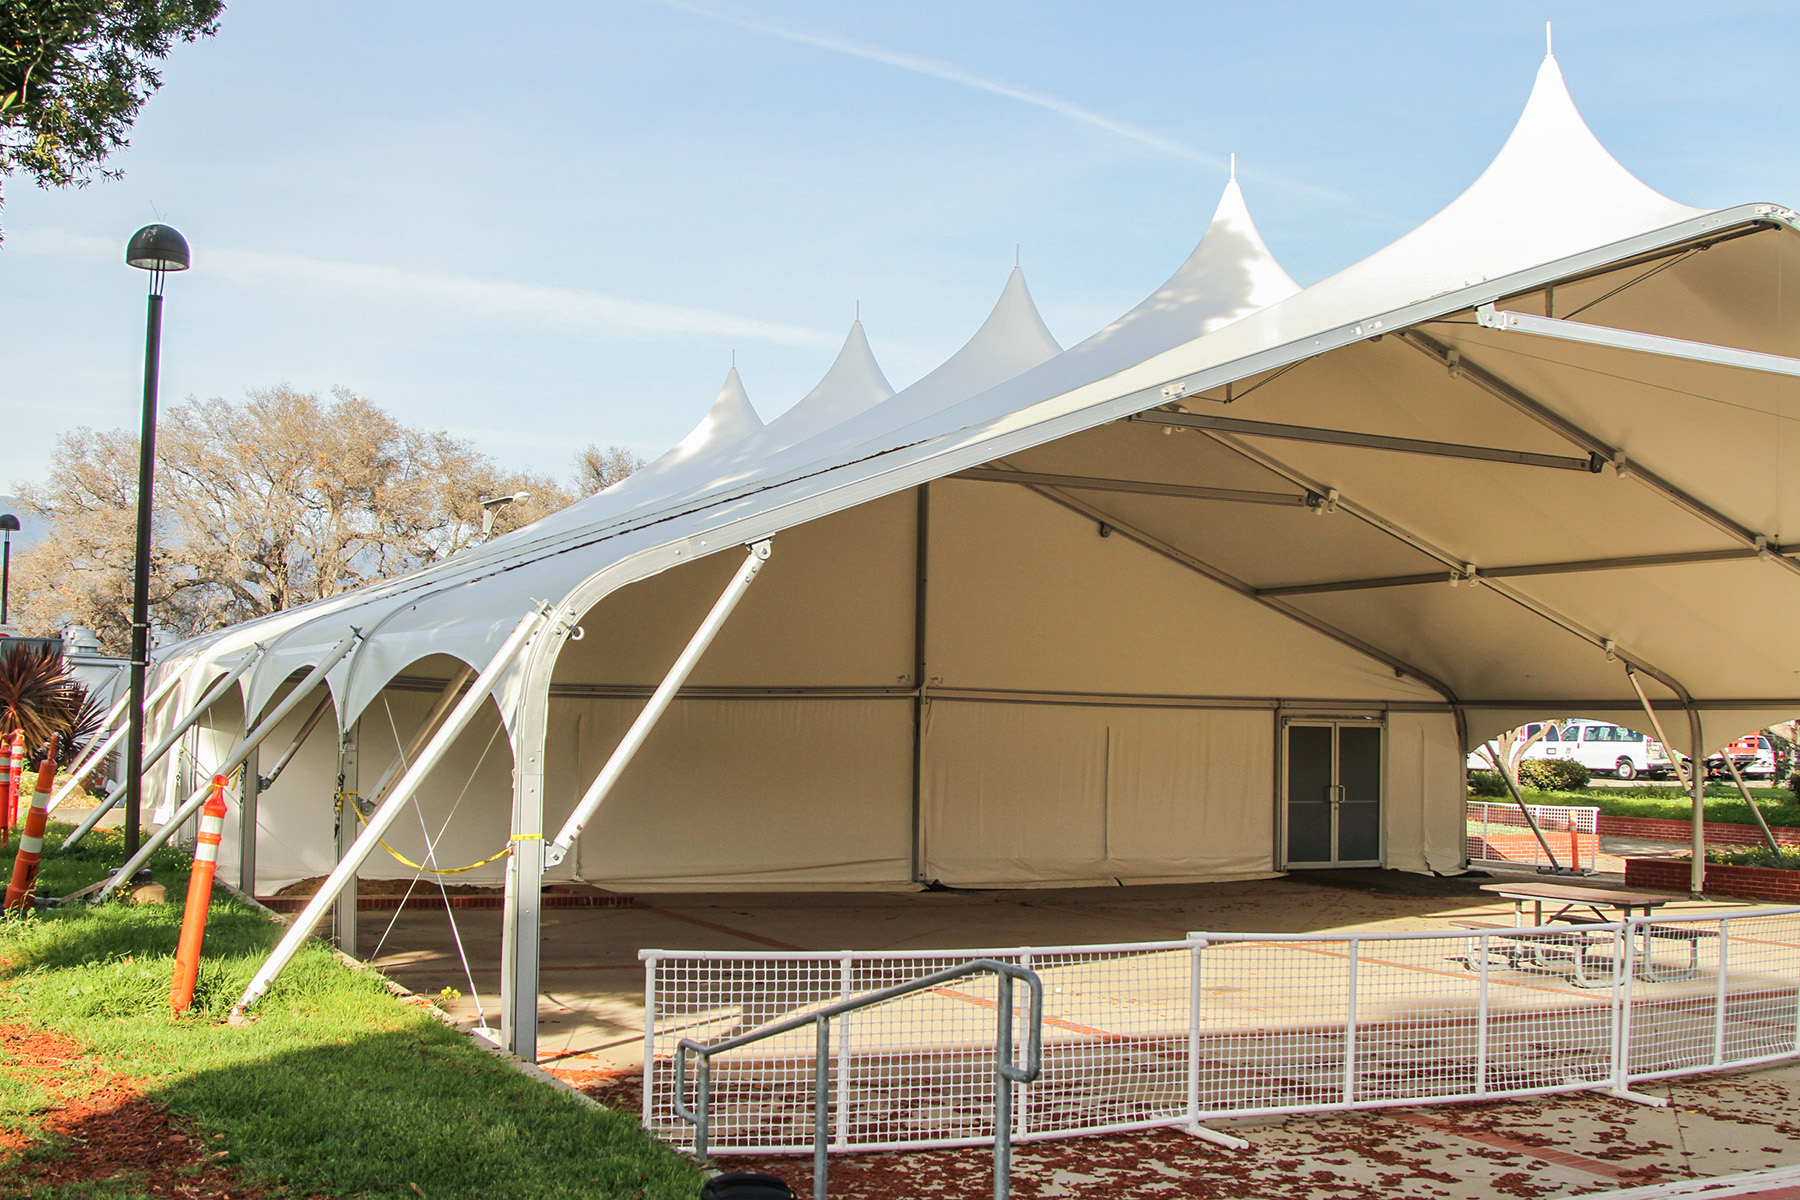 The+tent+on+Wednesday%2C+April+6%2C+2017%2C+next+to+the+Student+Services+Building+on+East+Campus+at+Santa+Barbara+%28Calif.%29+City+College.+Construction+on+the+tent+was+completed+last+year%2C+and+the+College+Paid+%24240%2C000+to+build+it.